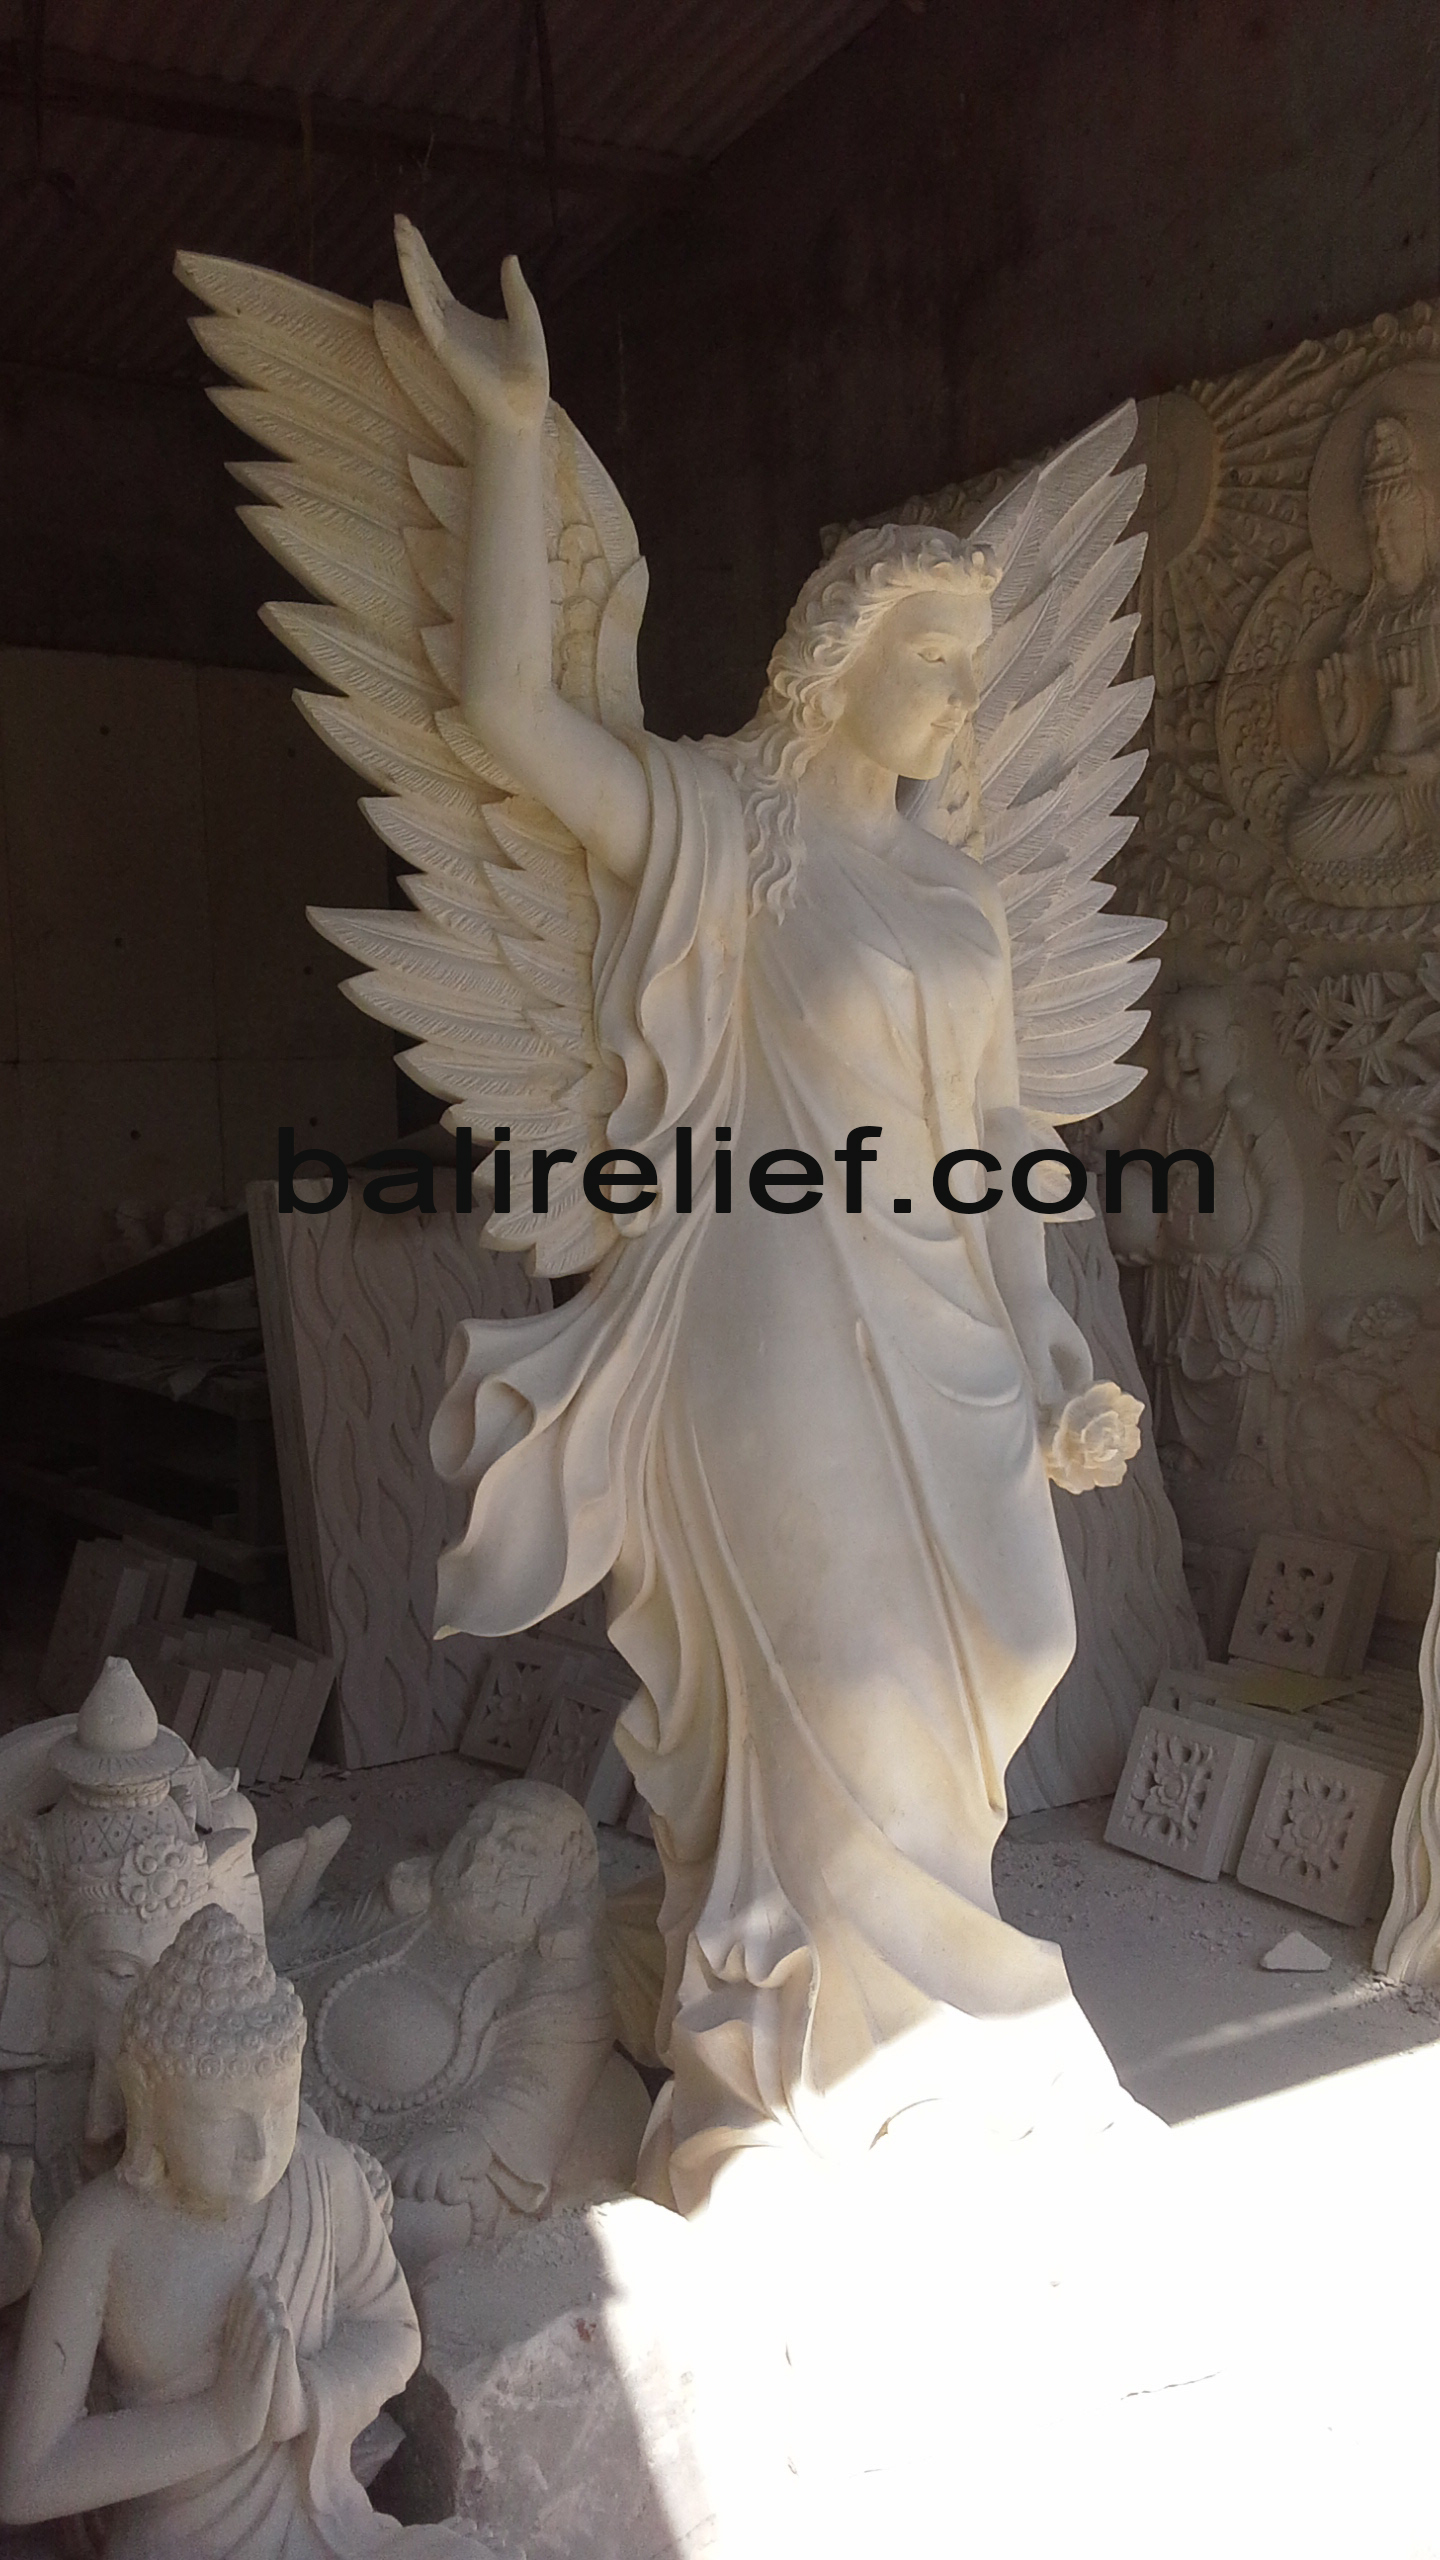 Balinese Sculpture for Sale - Statue REL-003